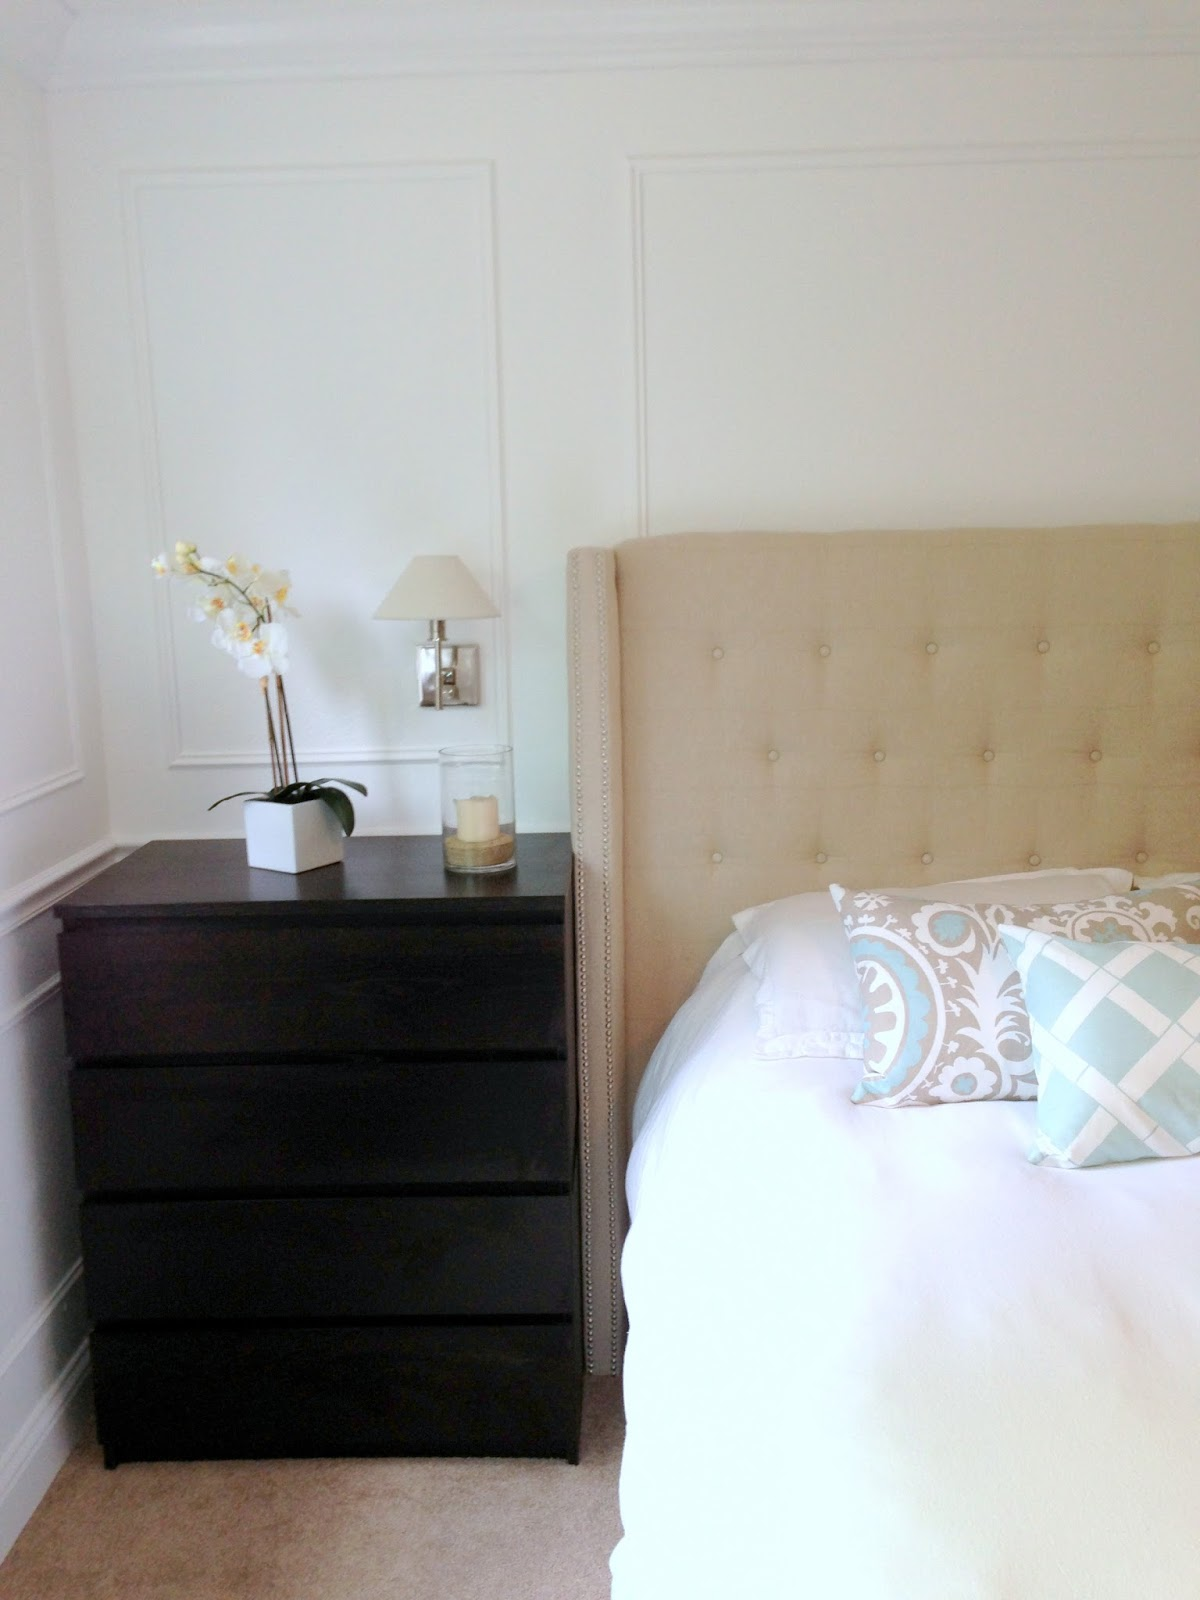 dorsey designs prior headboard on moment wi wall diy i the coral a or from wood with deciding arms white went black to nailhead decision upholstered of curved